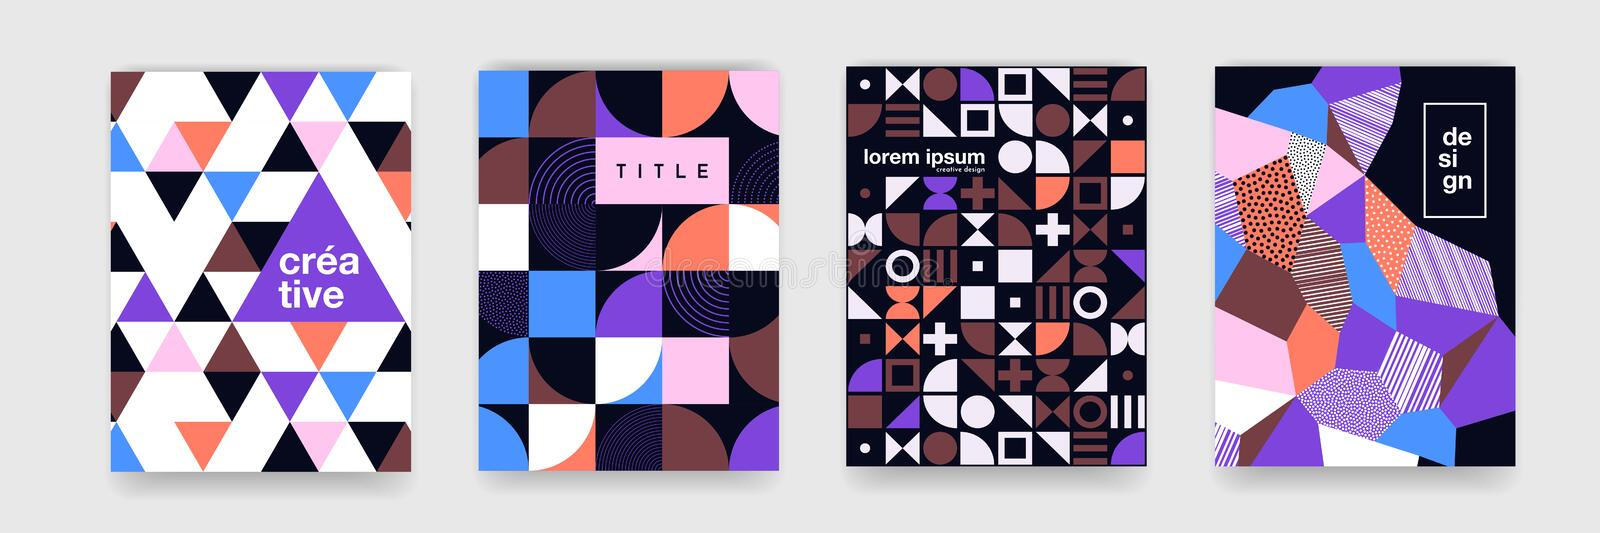 Geometric pattern background texture for poster cover design. Minimal color vector banner template with circles, square. Abstract geometric pattern background vector illustration